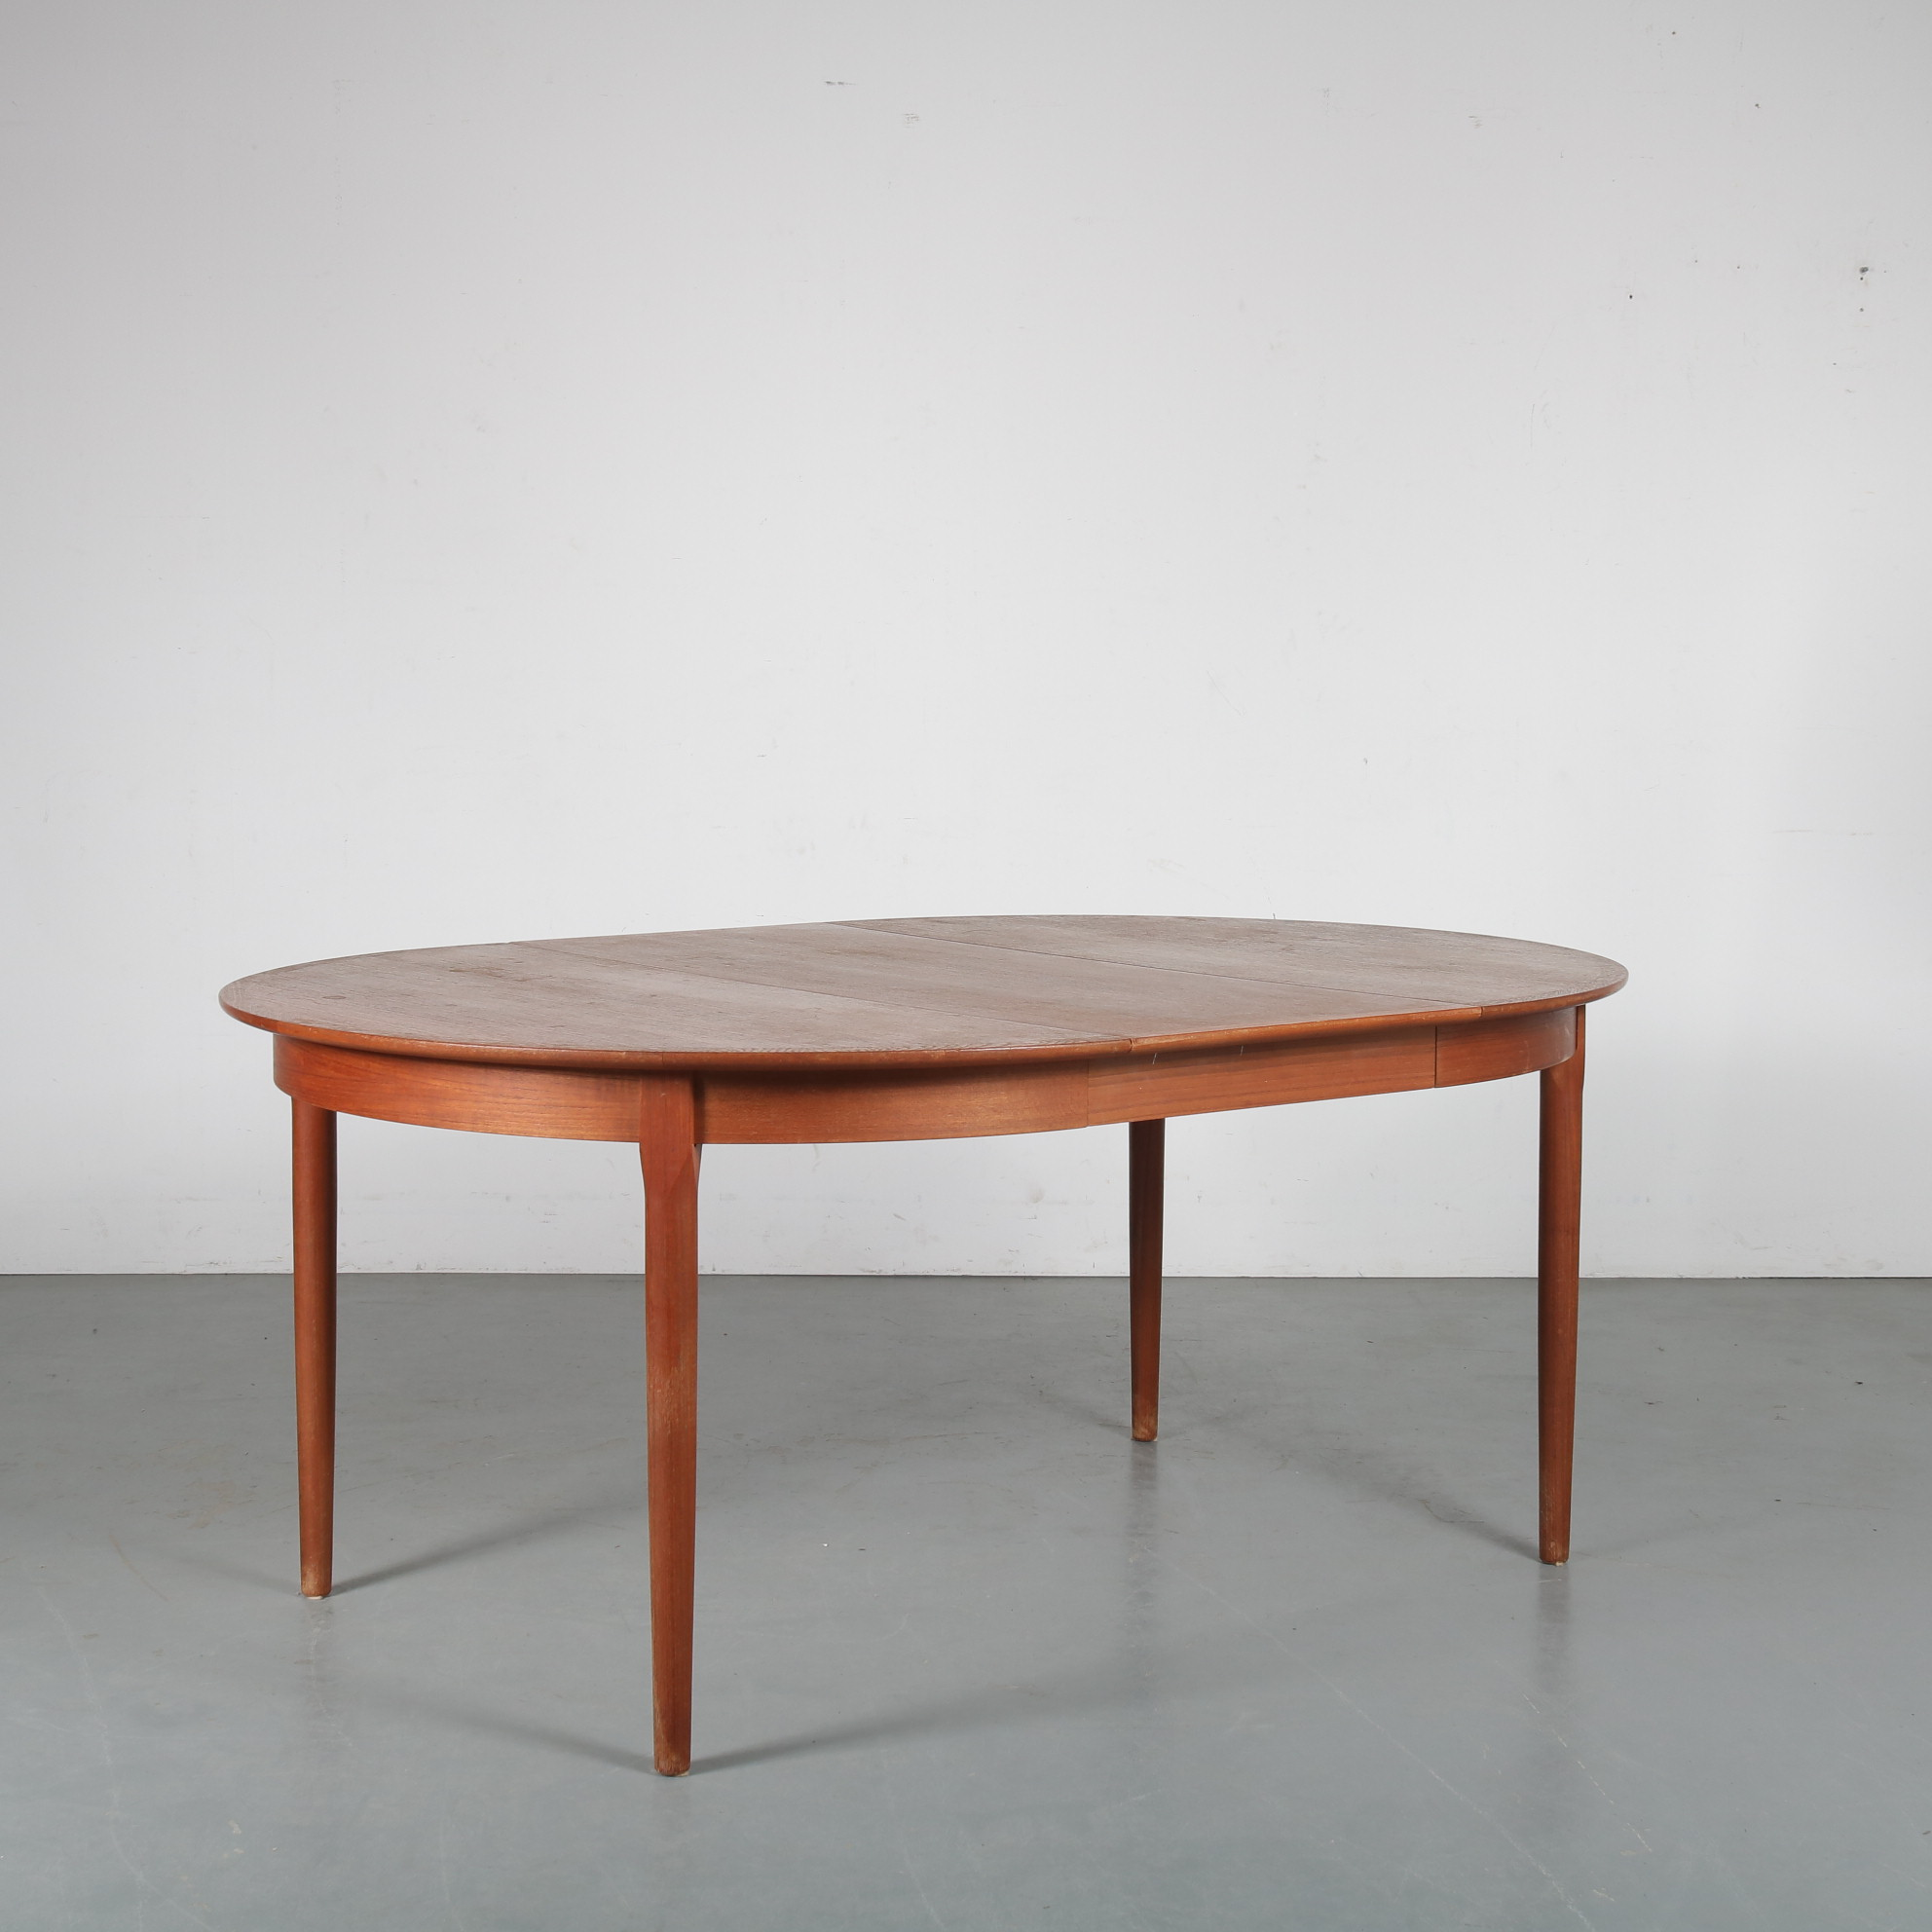 m24173 1950s Round teak Danish extendible dining table with one seperate inlay top A.R. / Denmark